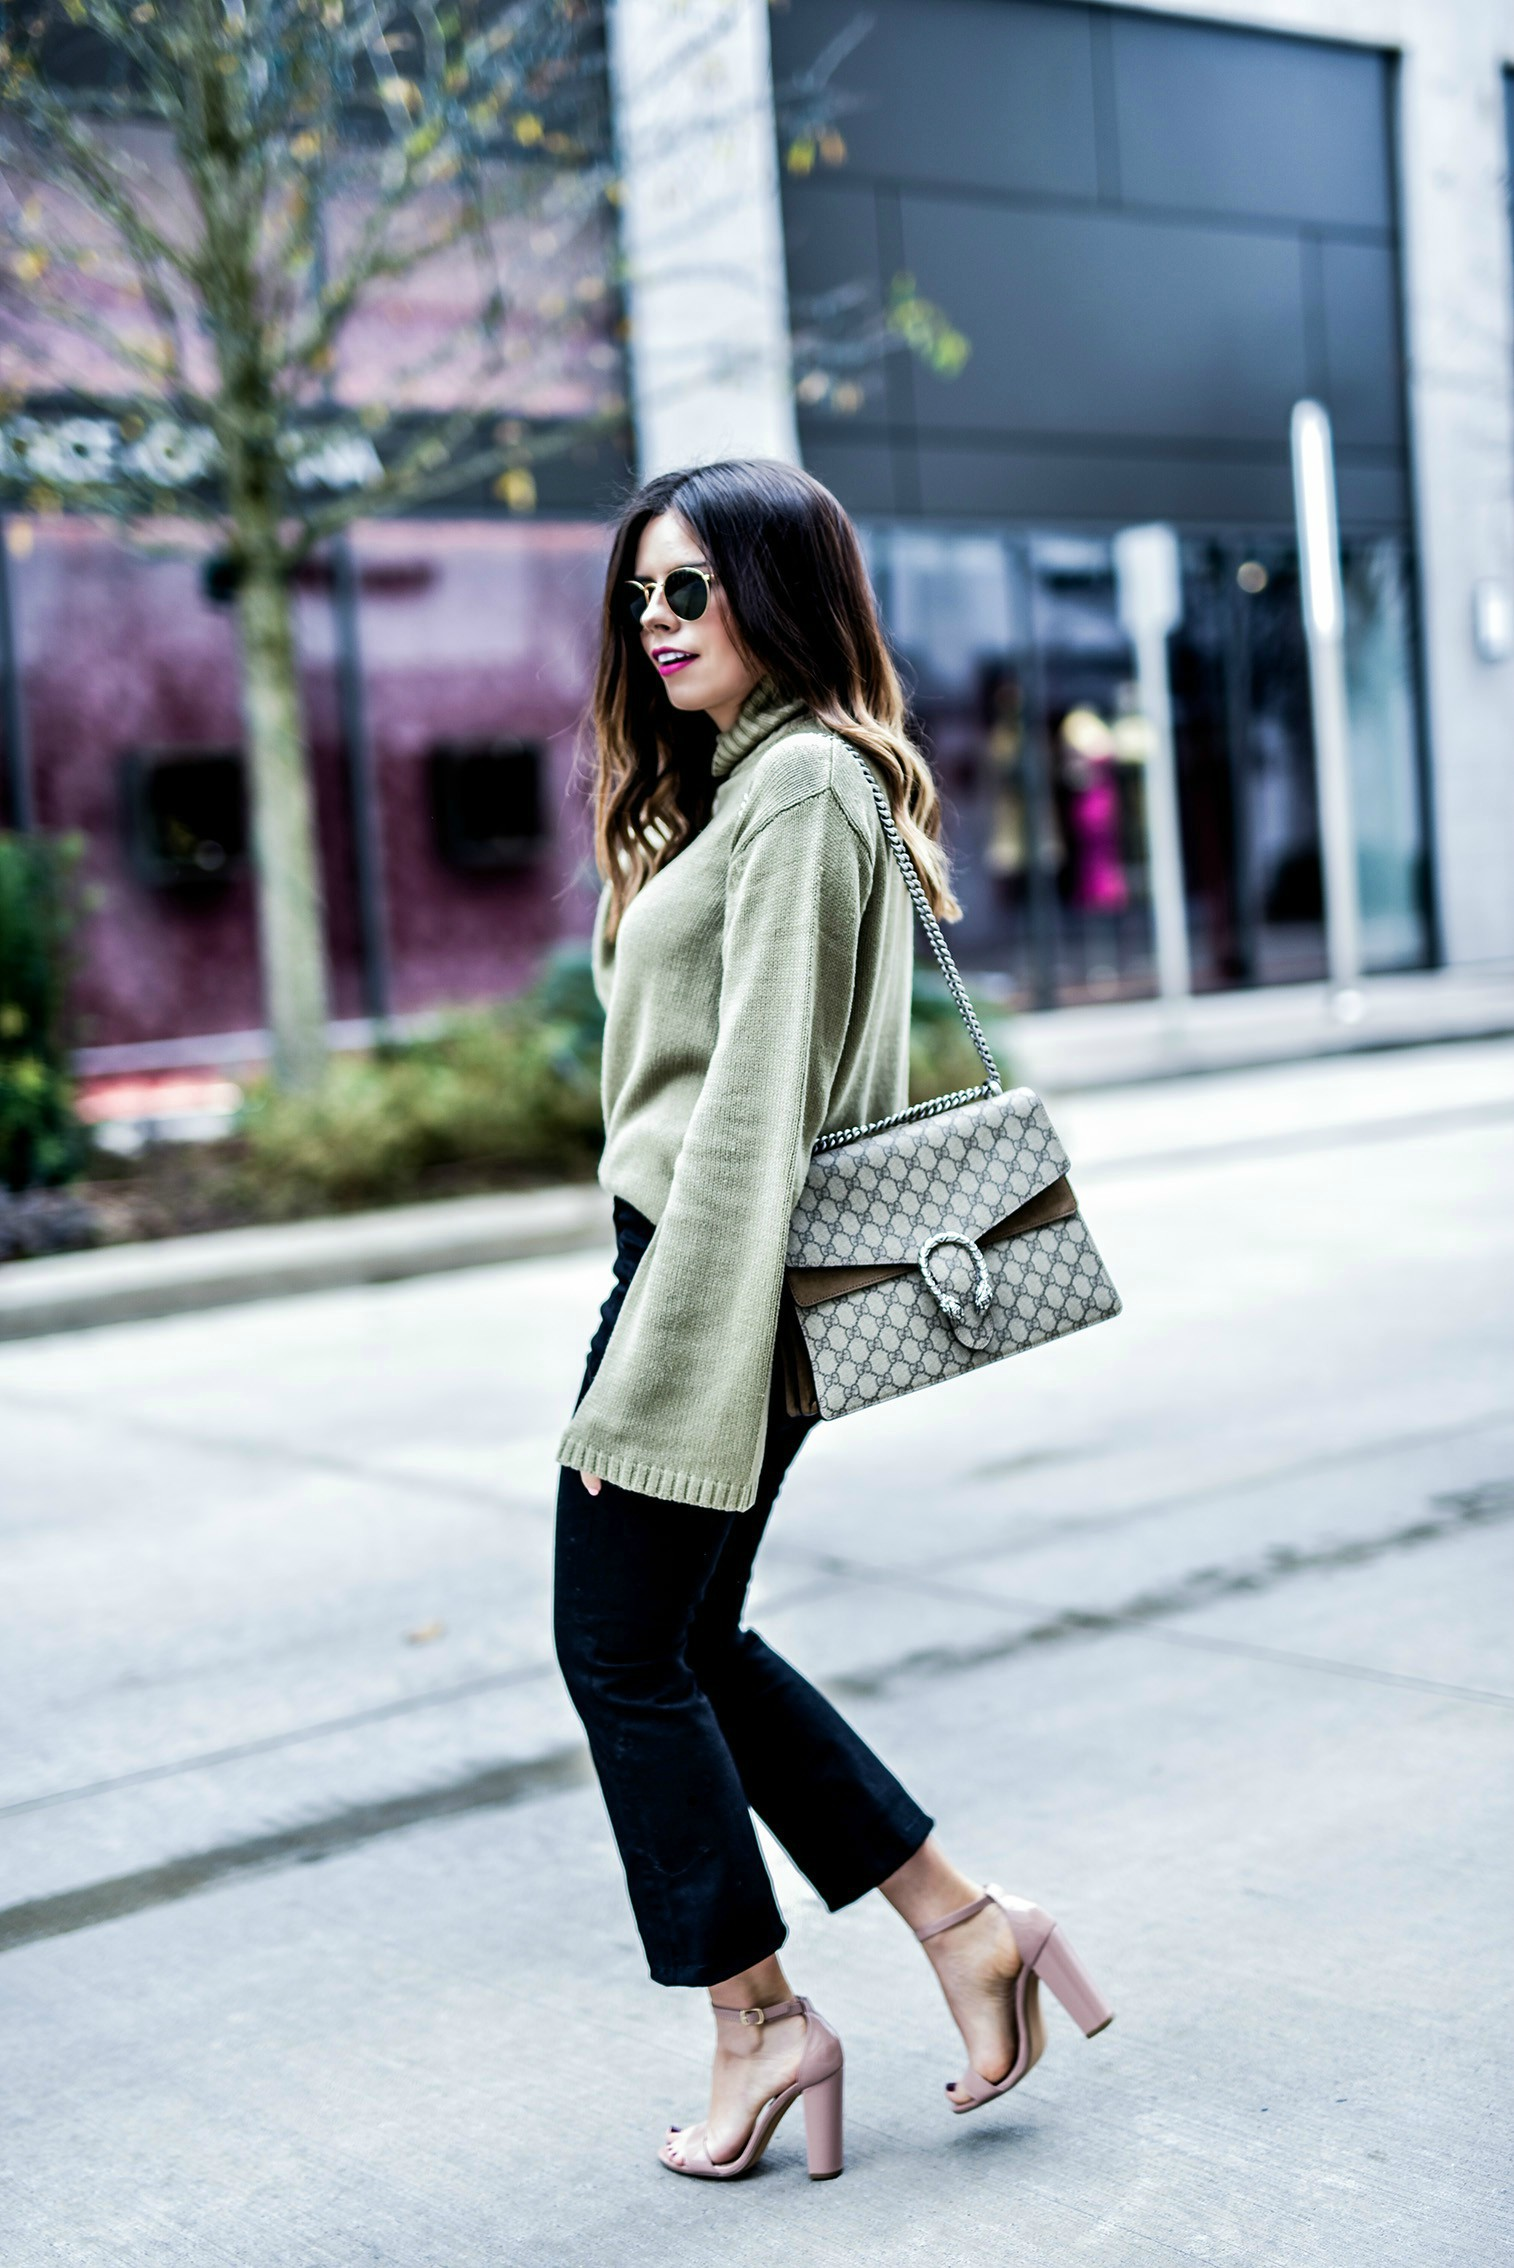 Tiffany Jais Houston fashion and lifestyle blogger sharing 3 closet must haves | Wearing a bell sleeve sweater in olive, and black denim flare cropped jeans | Gucci Dionysus bag, what's trending